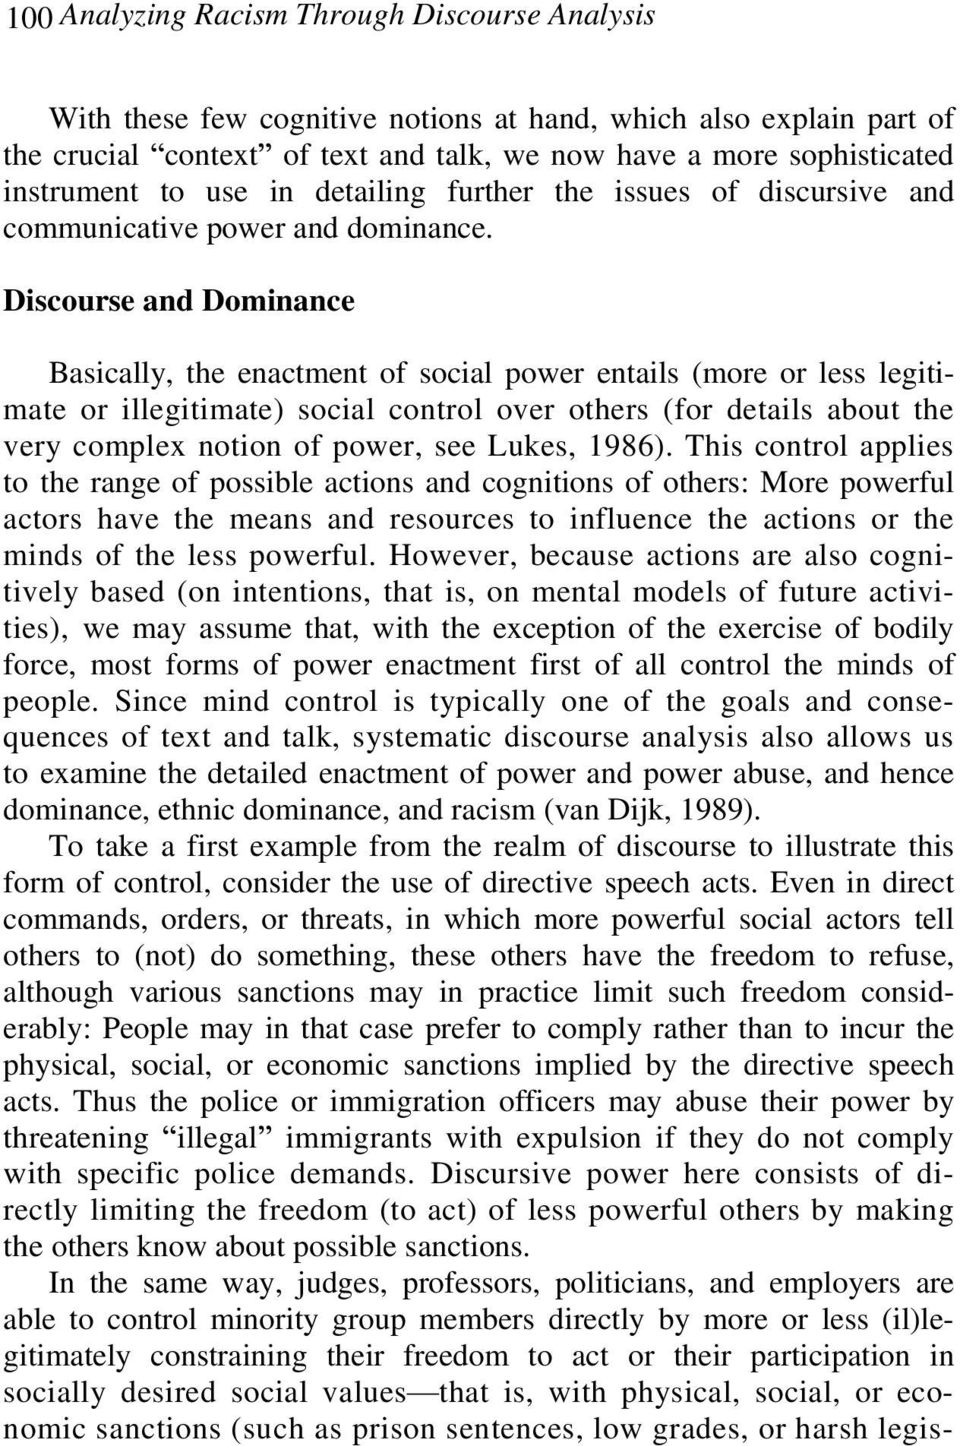 Discourse and Dominance Basically, the enactment of social power entails (more or less legitimate or illegitimate) social control over others (for details about the very complex notion of power, see